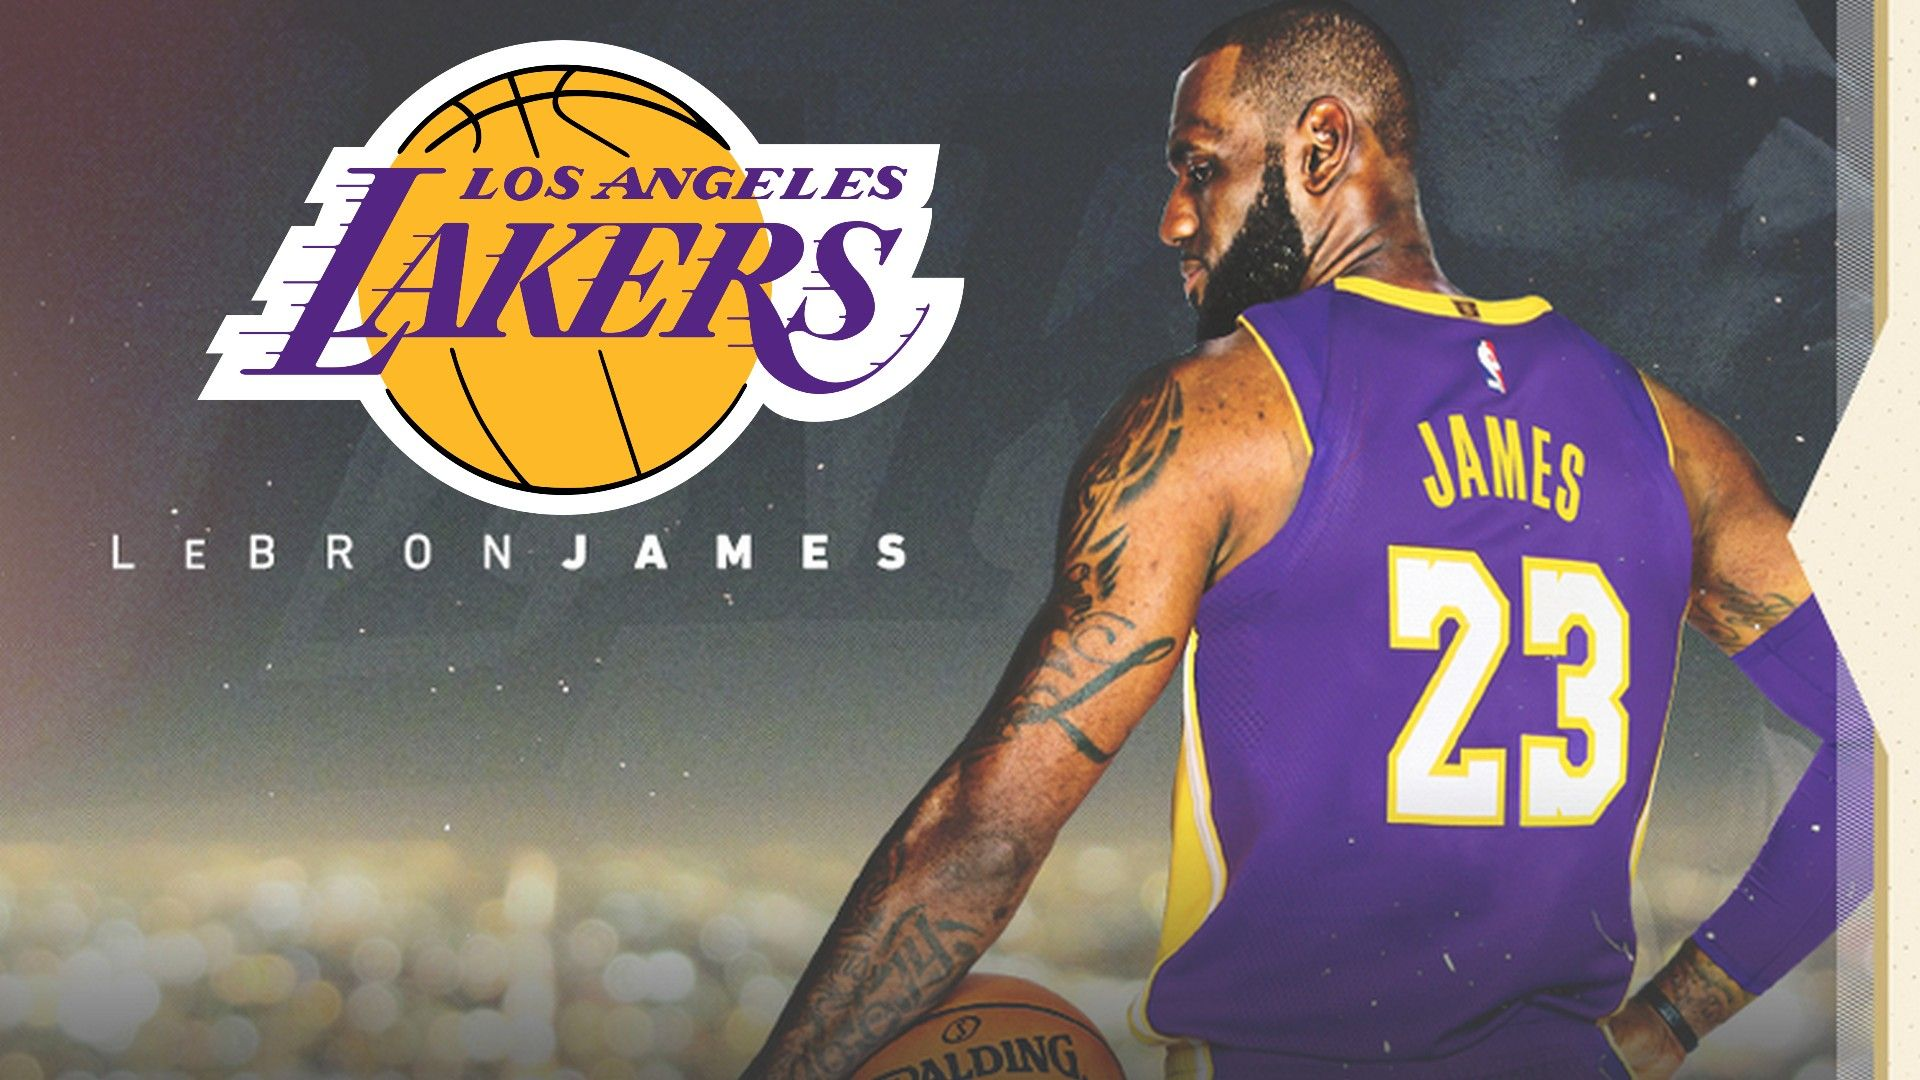 Pin By All About Nba On Nfl Lebron James Lakers Lebron James Lakers